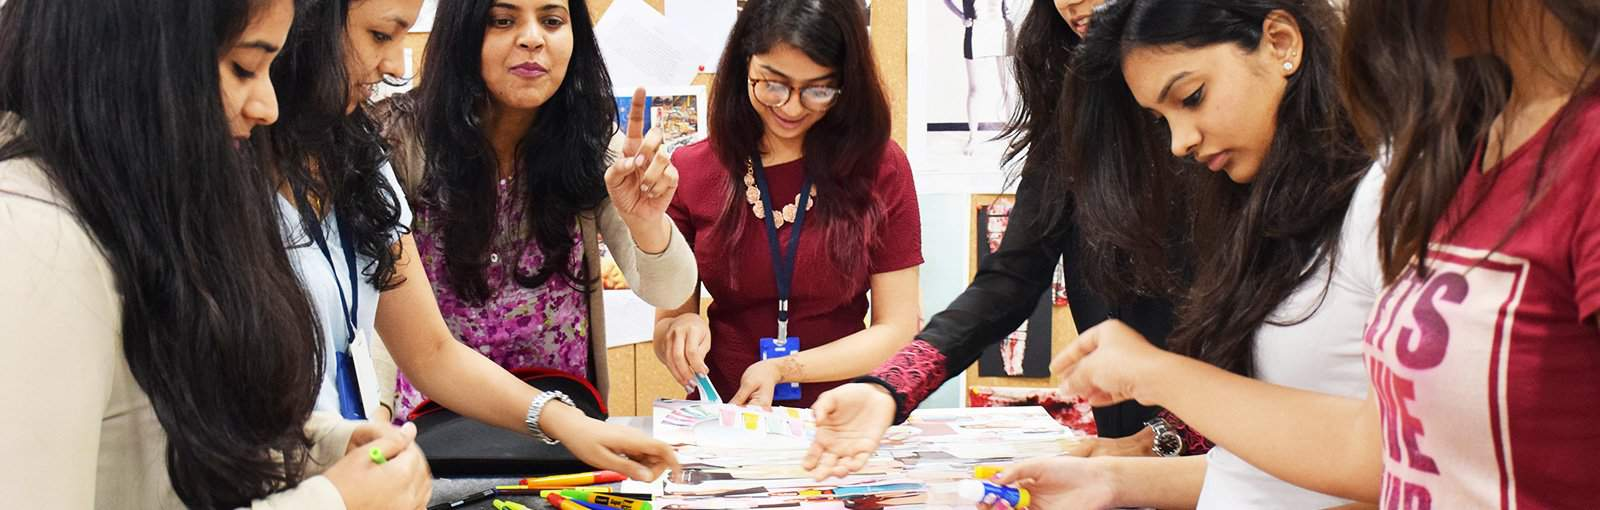 Top Fashion Designing Colleges in India - Ranks, Fees, Cut-off 50